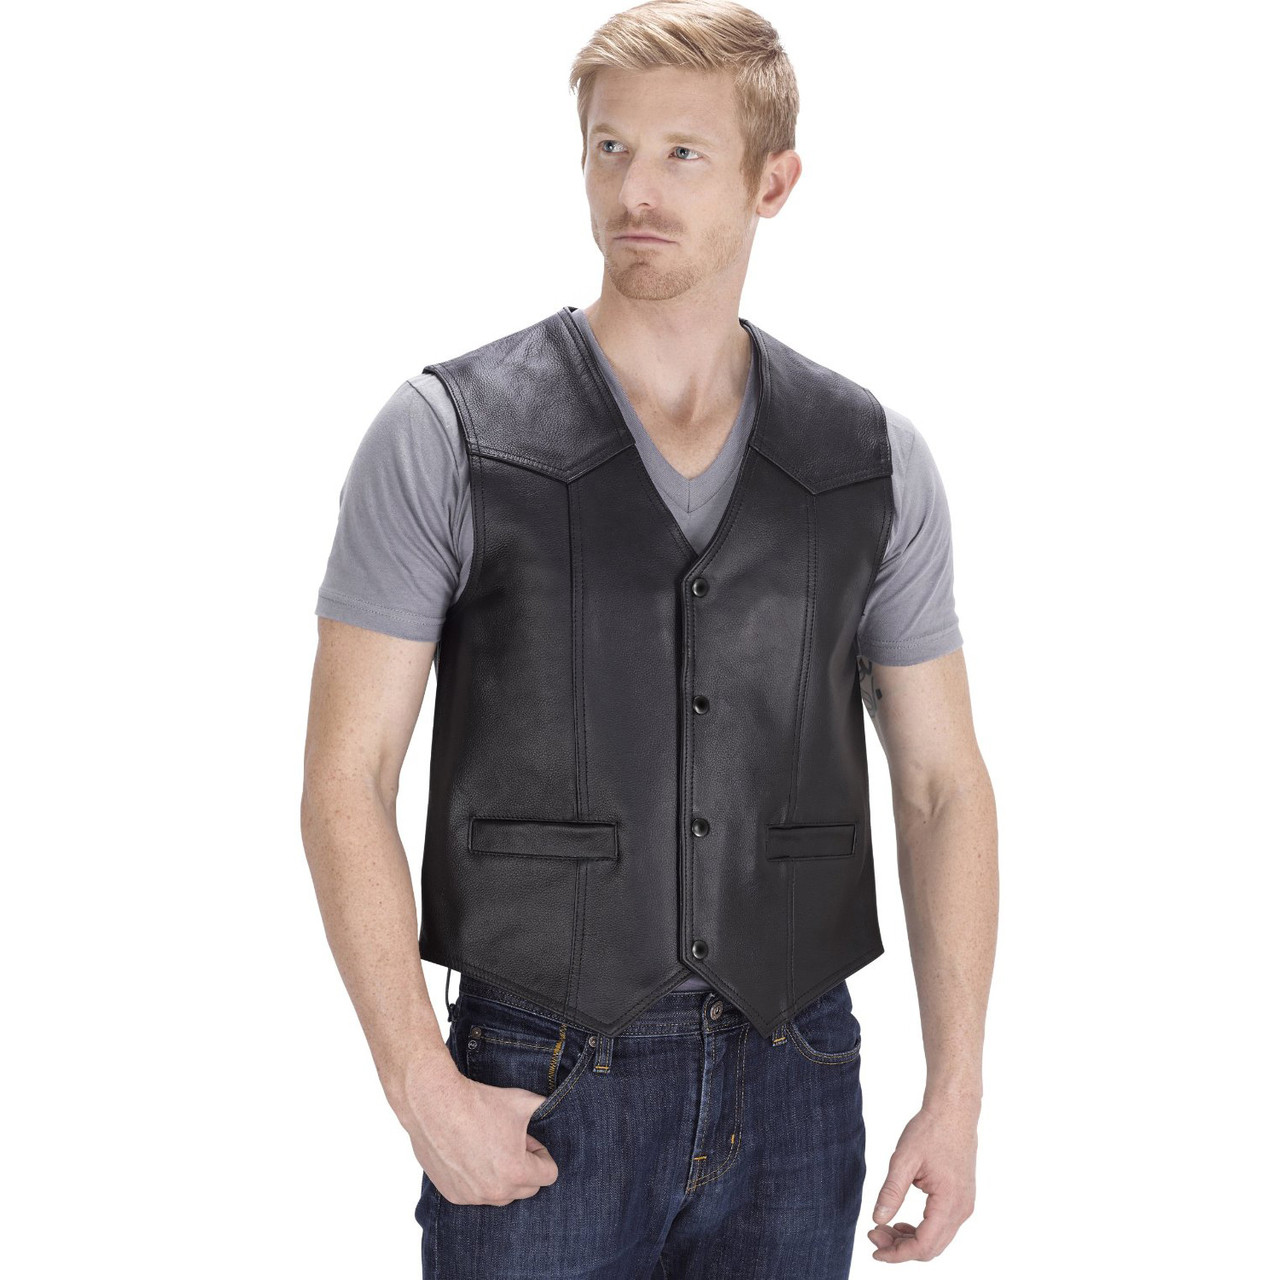 VikingCycle Raider Motorcycle Vest for Men Front Side